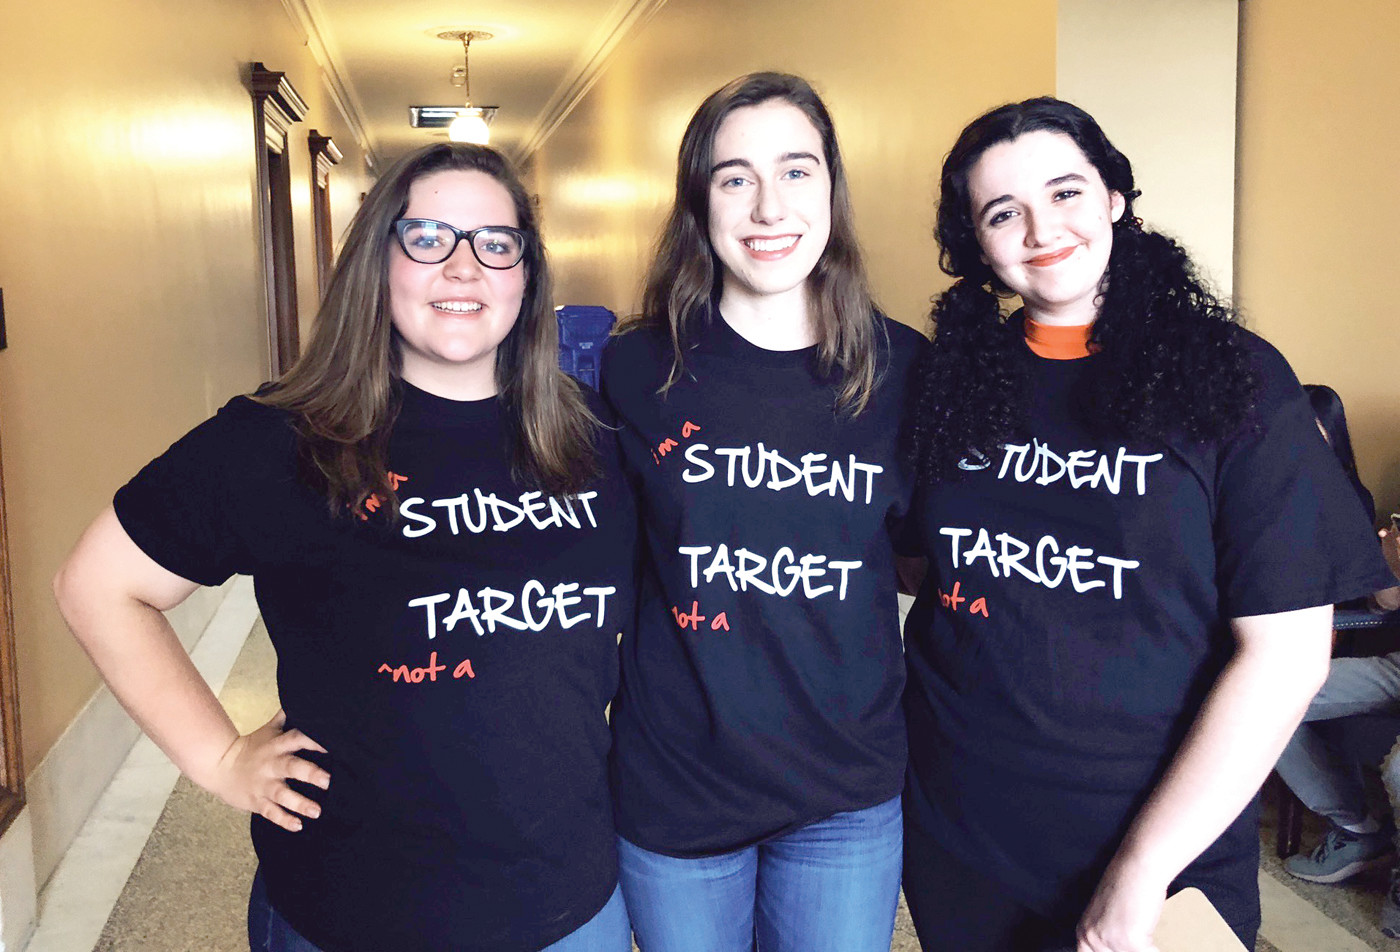 STUDENT ACTIVISTS: From left to right Sara Huckabee, Grace Reed, and Jenna Carmichael, all from Toll Gate High School, were fighting for the Safe Schools Act on Wednesday at the State House.